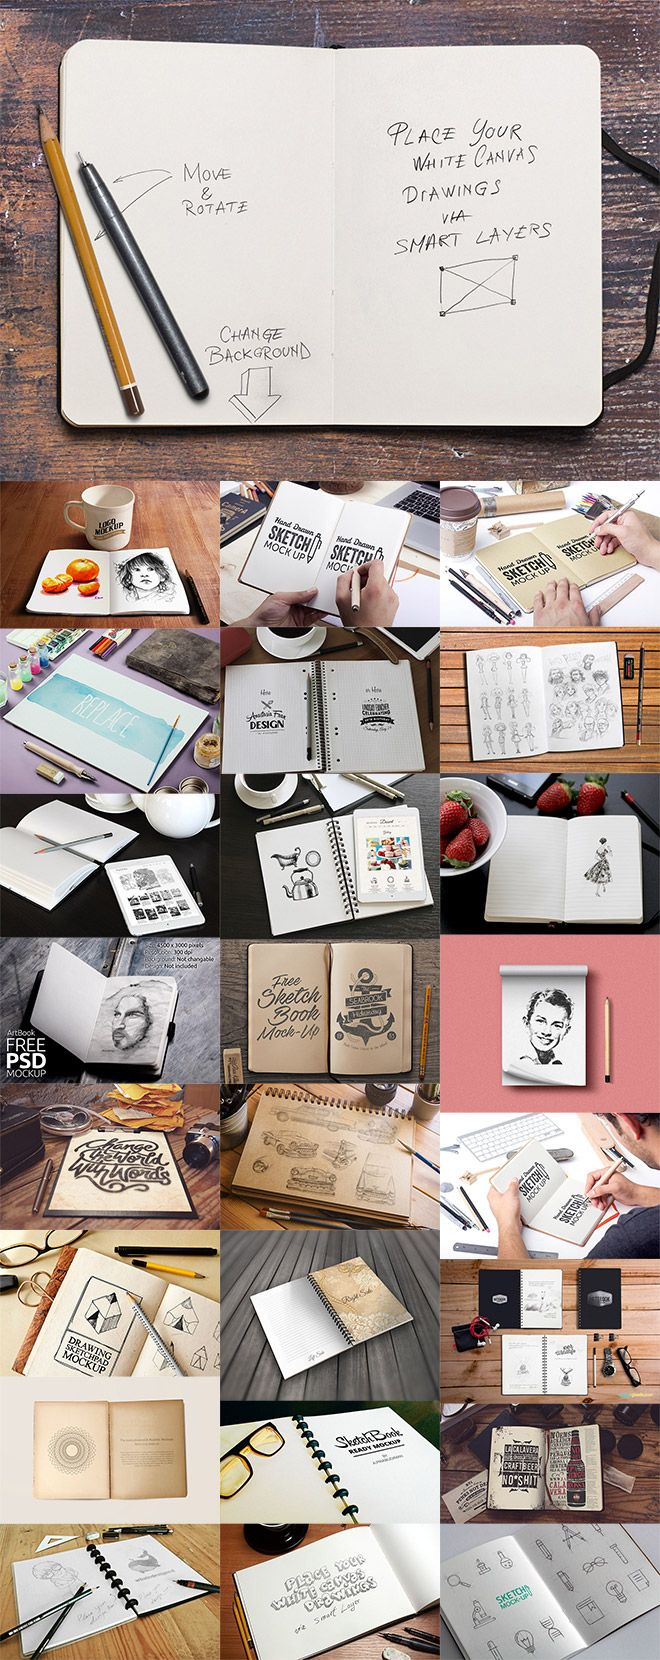 Mockup templates of sketchbooks and notepads are useful tools to show off your artwork or design concepts in a much more presentable way than simply uploading a flat scan of your drawings. These free PSD templates allow you to paste in your boring scans to have them automatically scaled and positioned to fit within the …